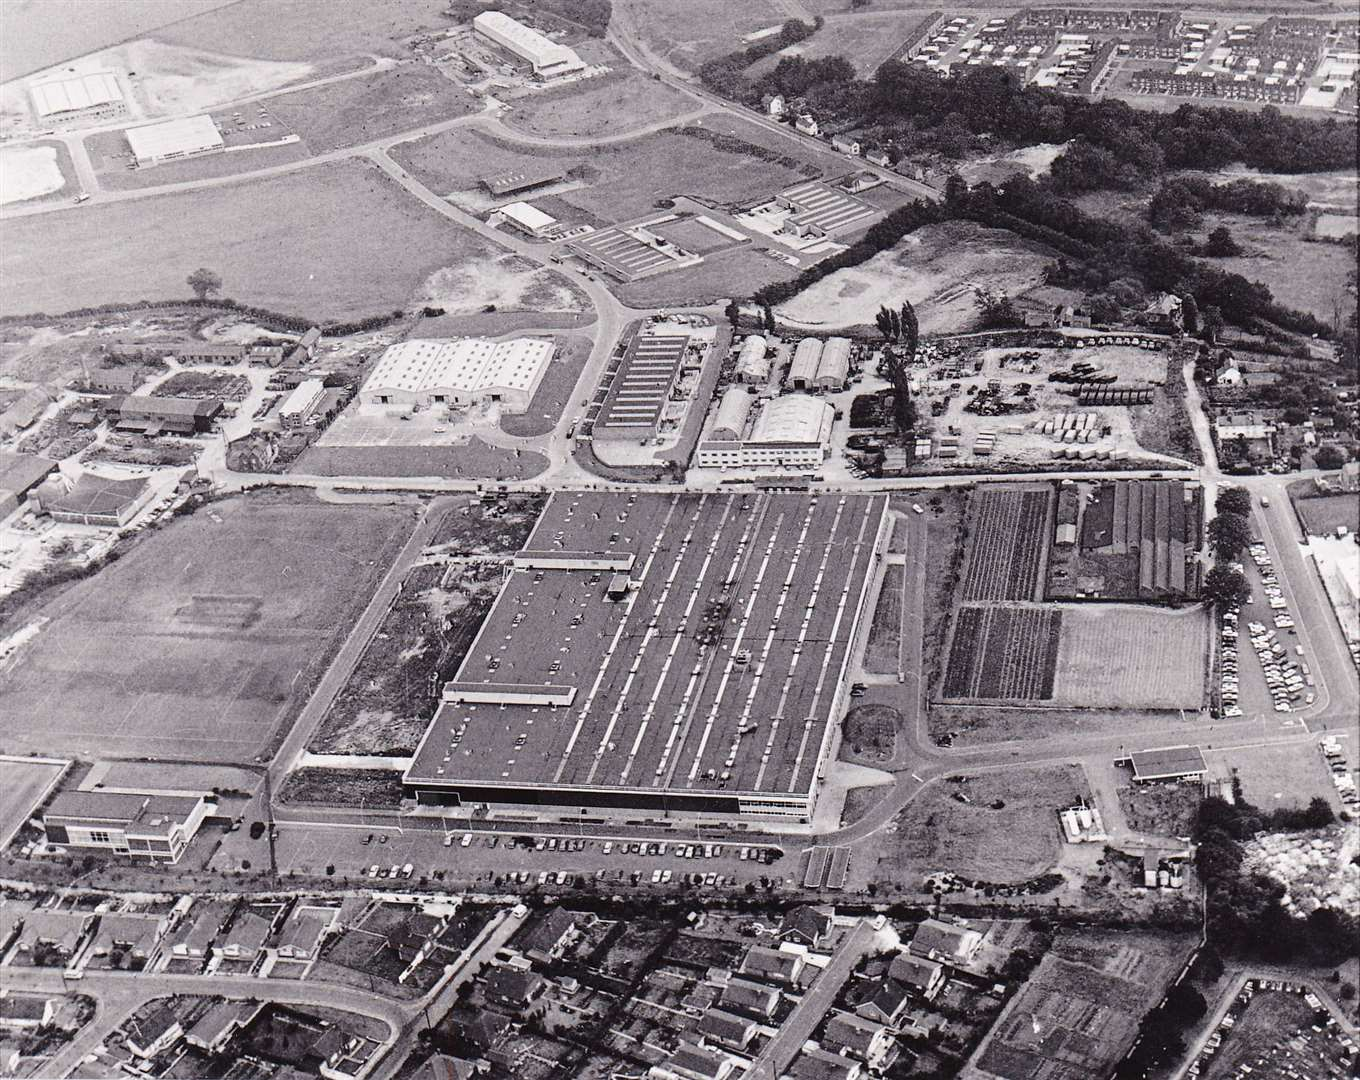 Sudbury Lucas CAV factory in 1971. Picture: Sudbury Photo Archive